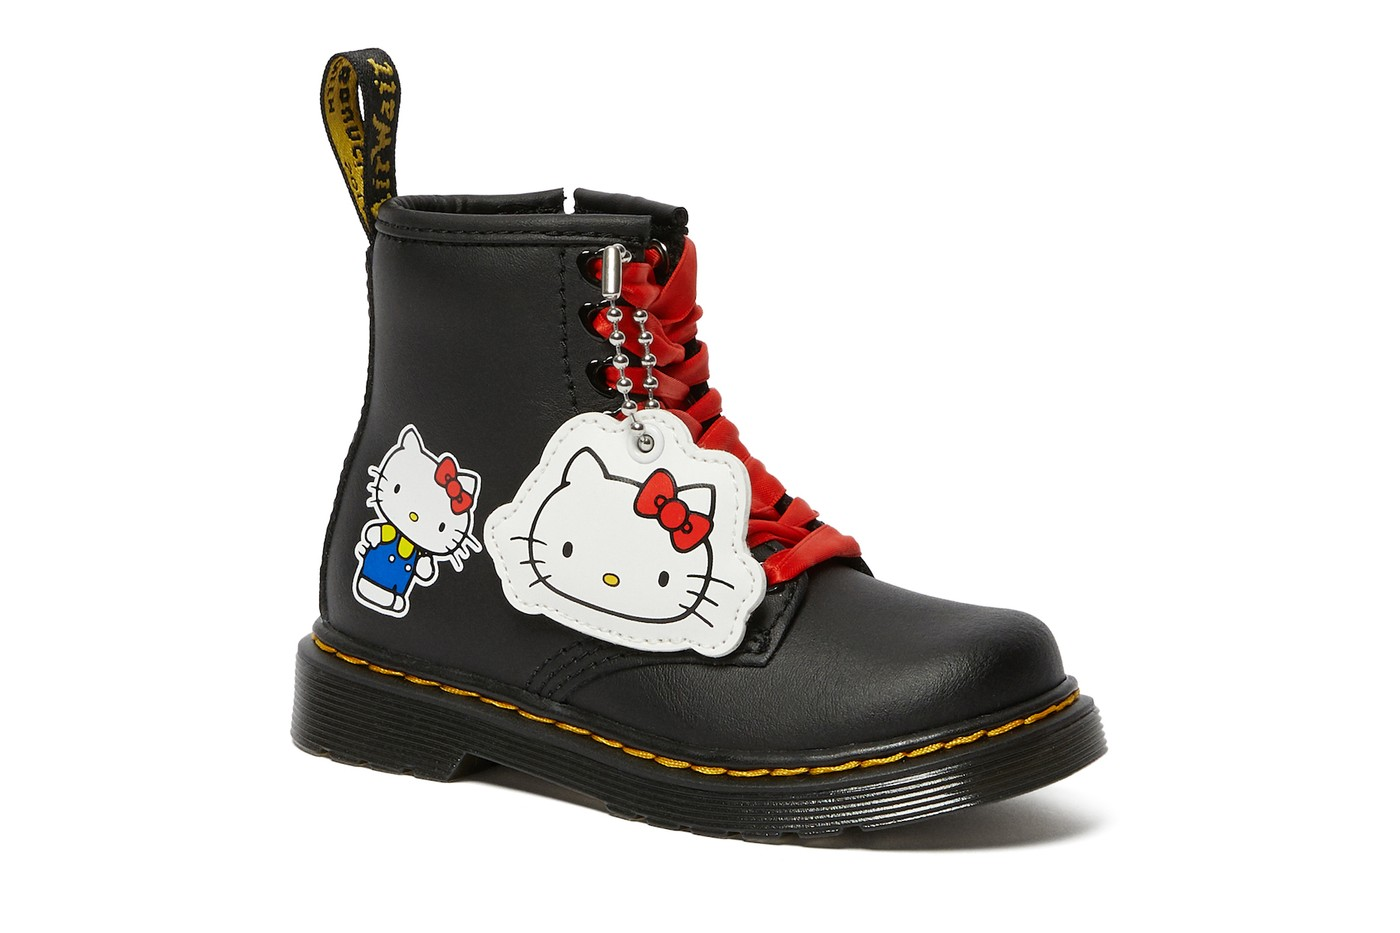 dr Martens hello kitty collaboration collection boots shoes